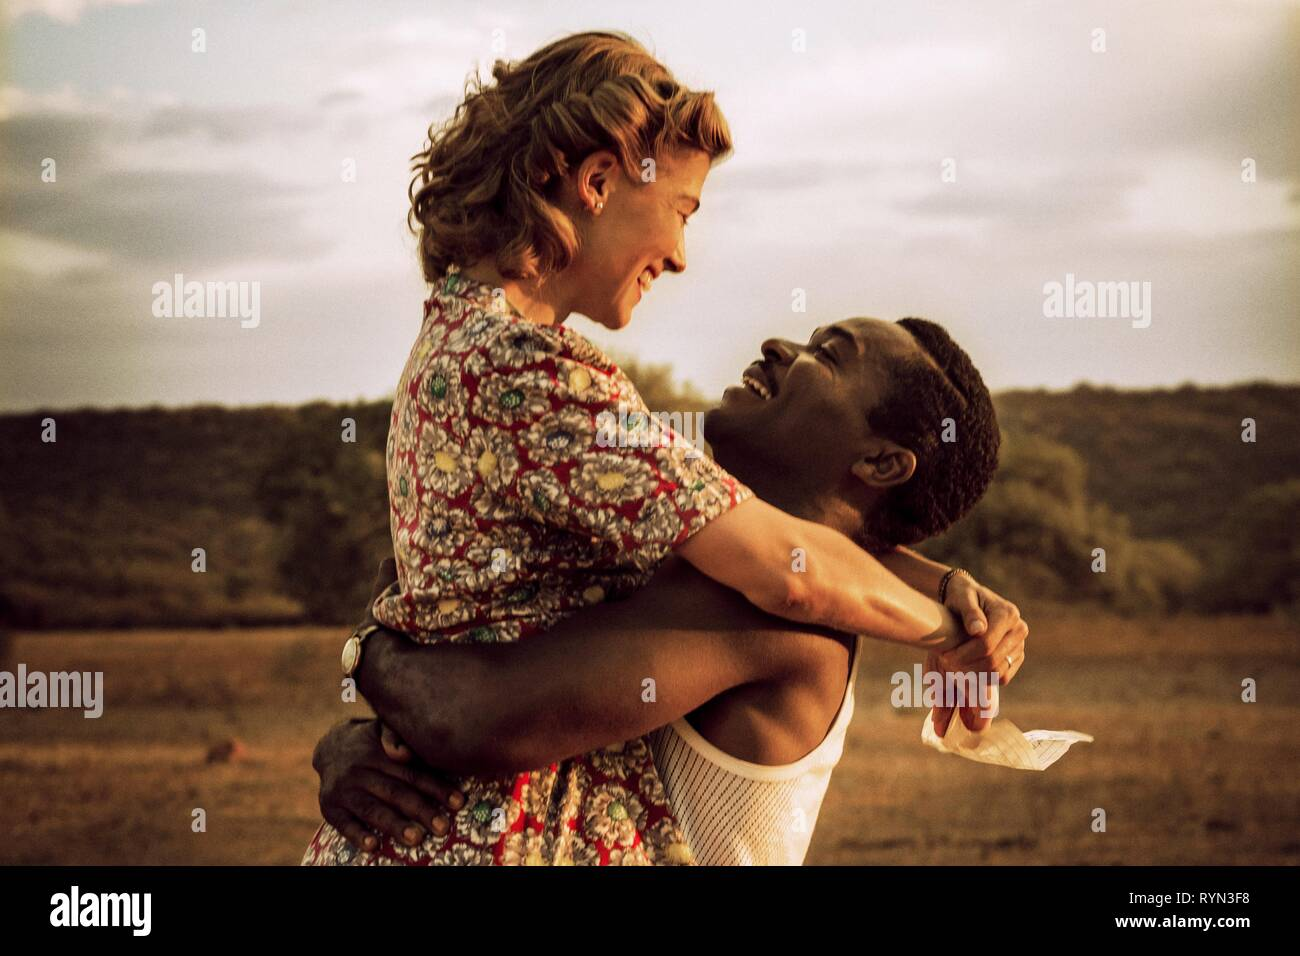 PIKE,OYELOWO, A UNITED KINGDOM, 2016 - Stock Image